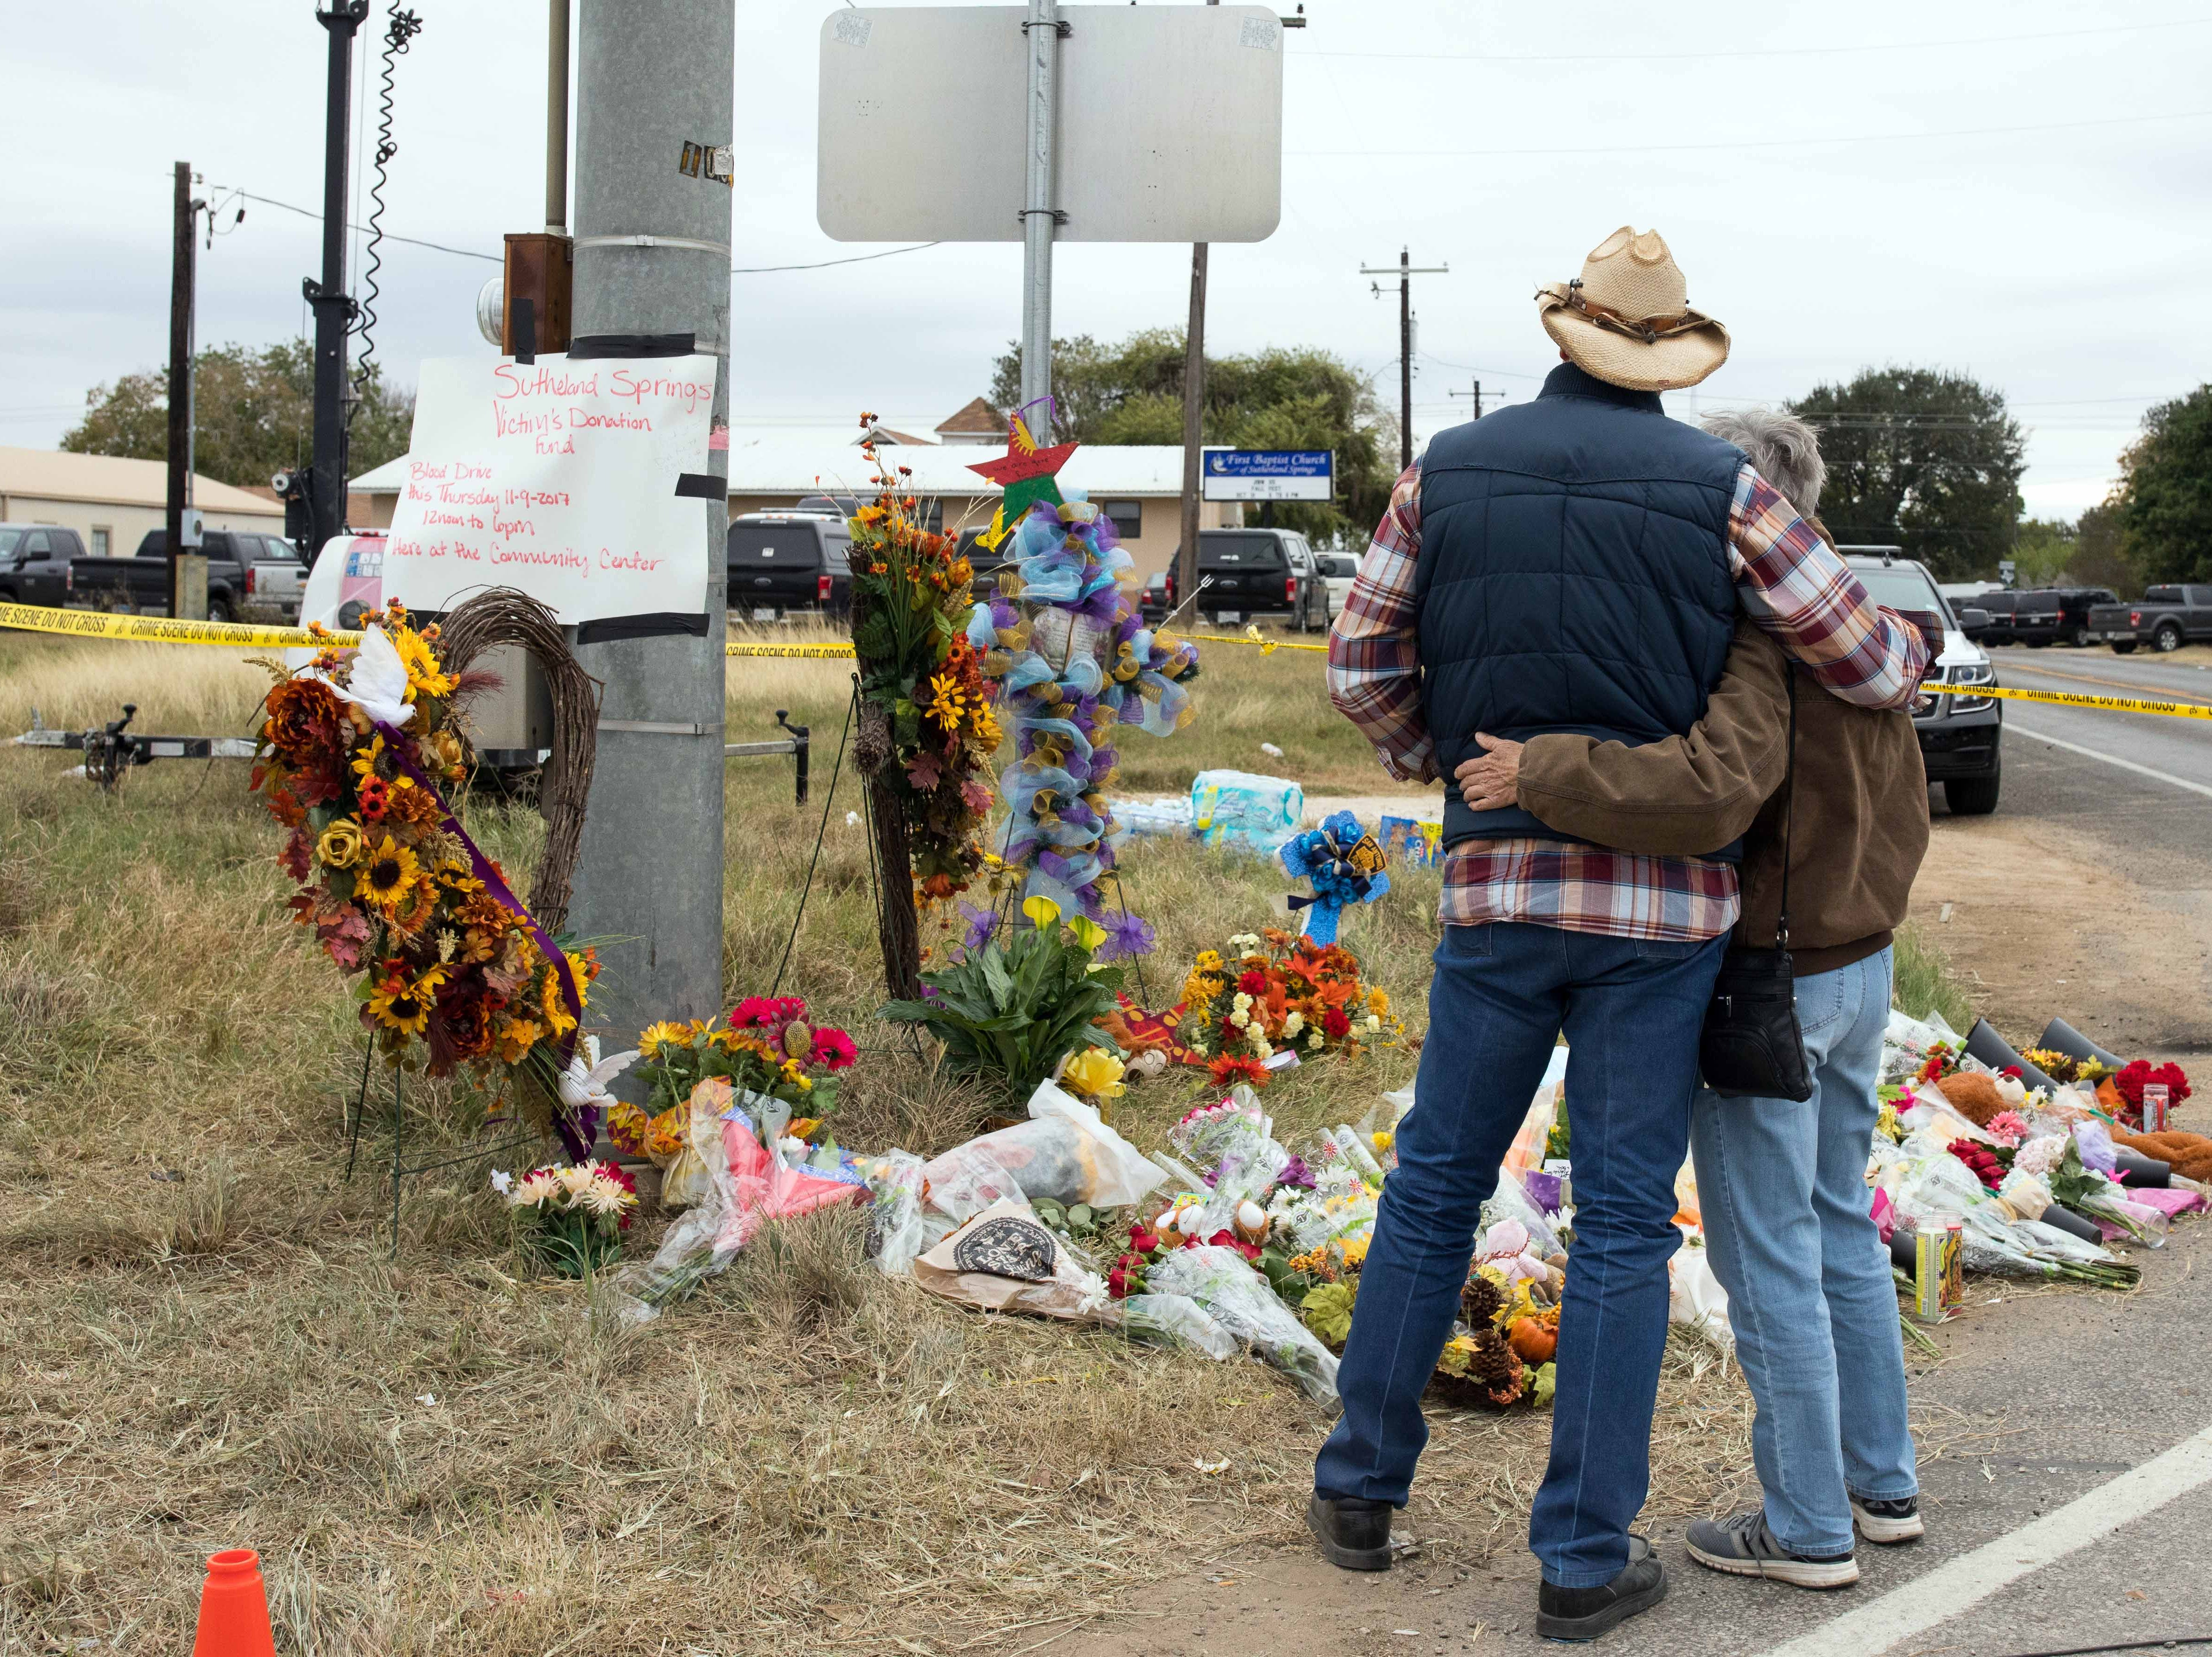 First Baptist Church   Sutherland Springs, Texas   Nov. 5, 2017   27 dead   20 wounded